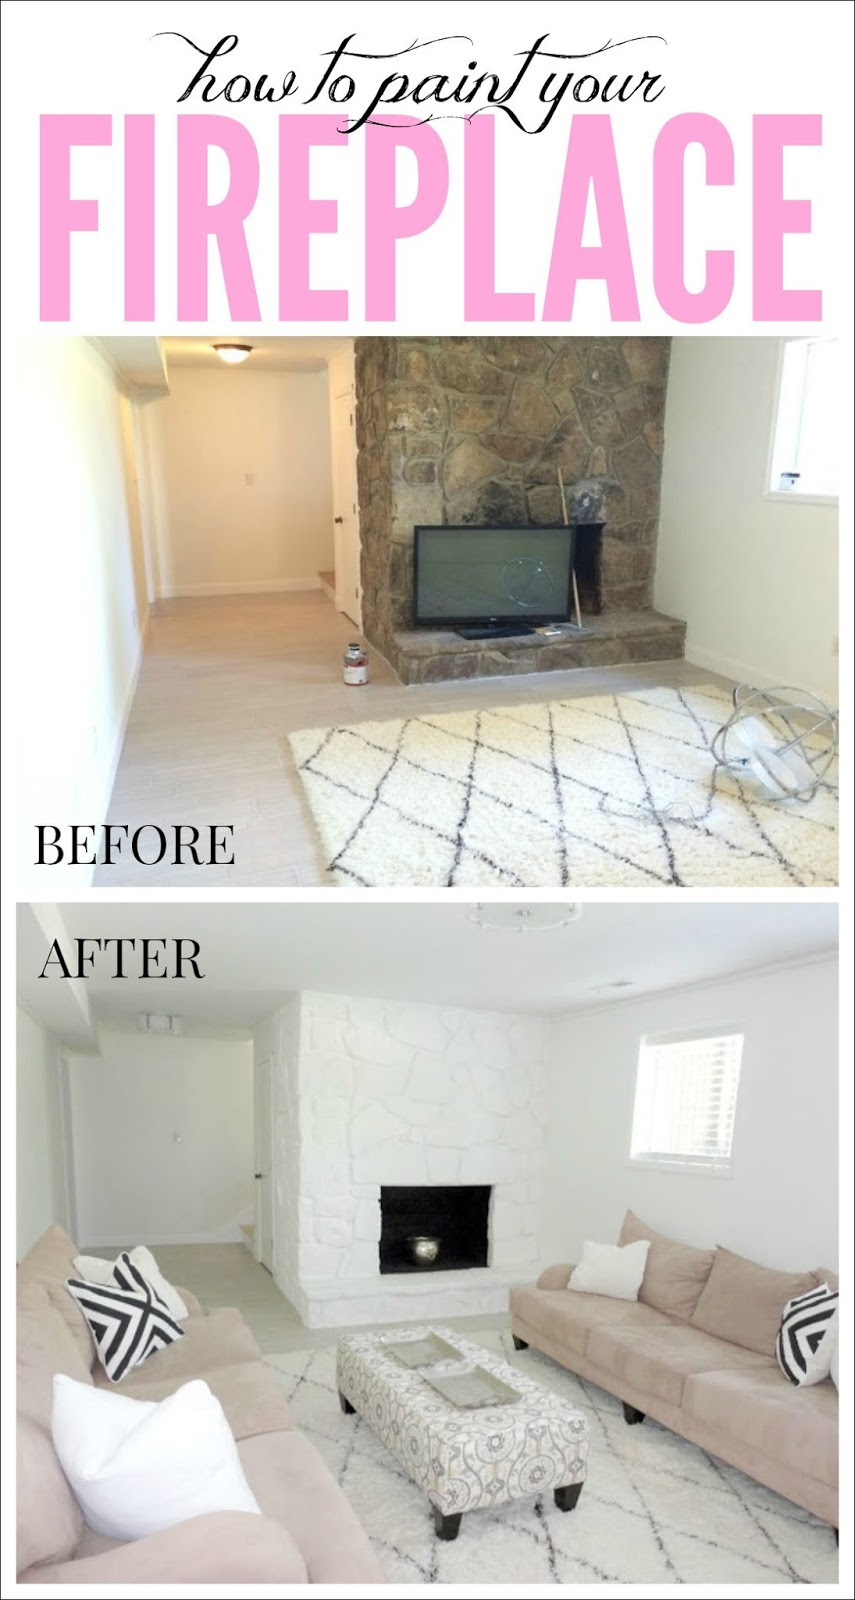 LiveLoveDIY: 10 Home Improvement Ideas: How To Make The Most of What ...